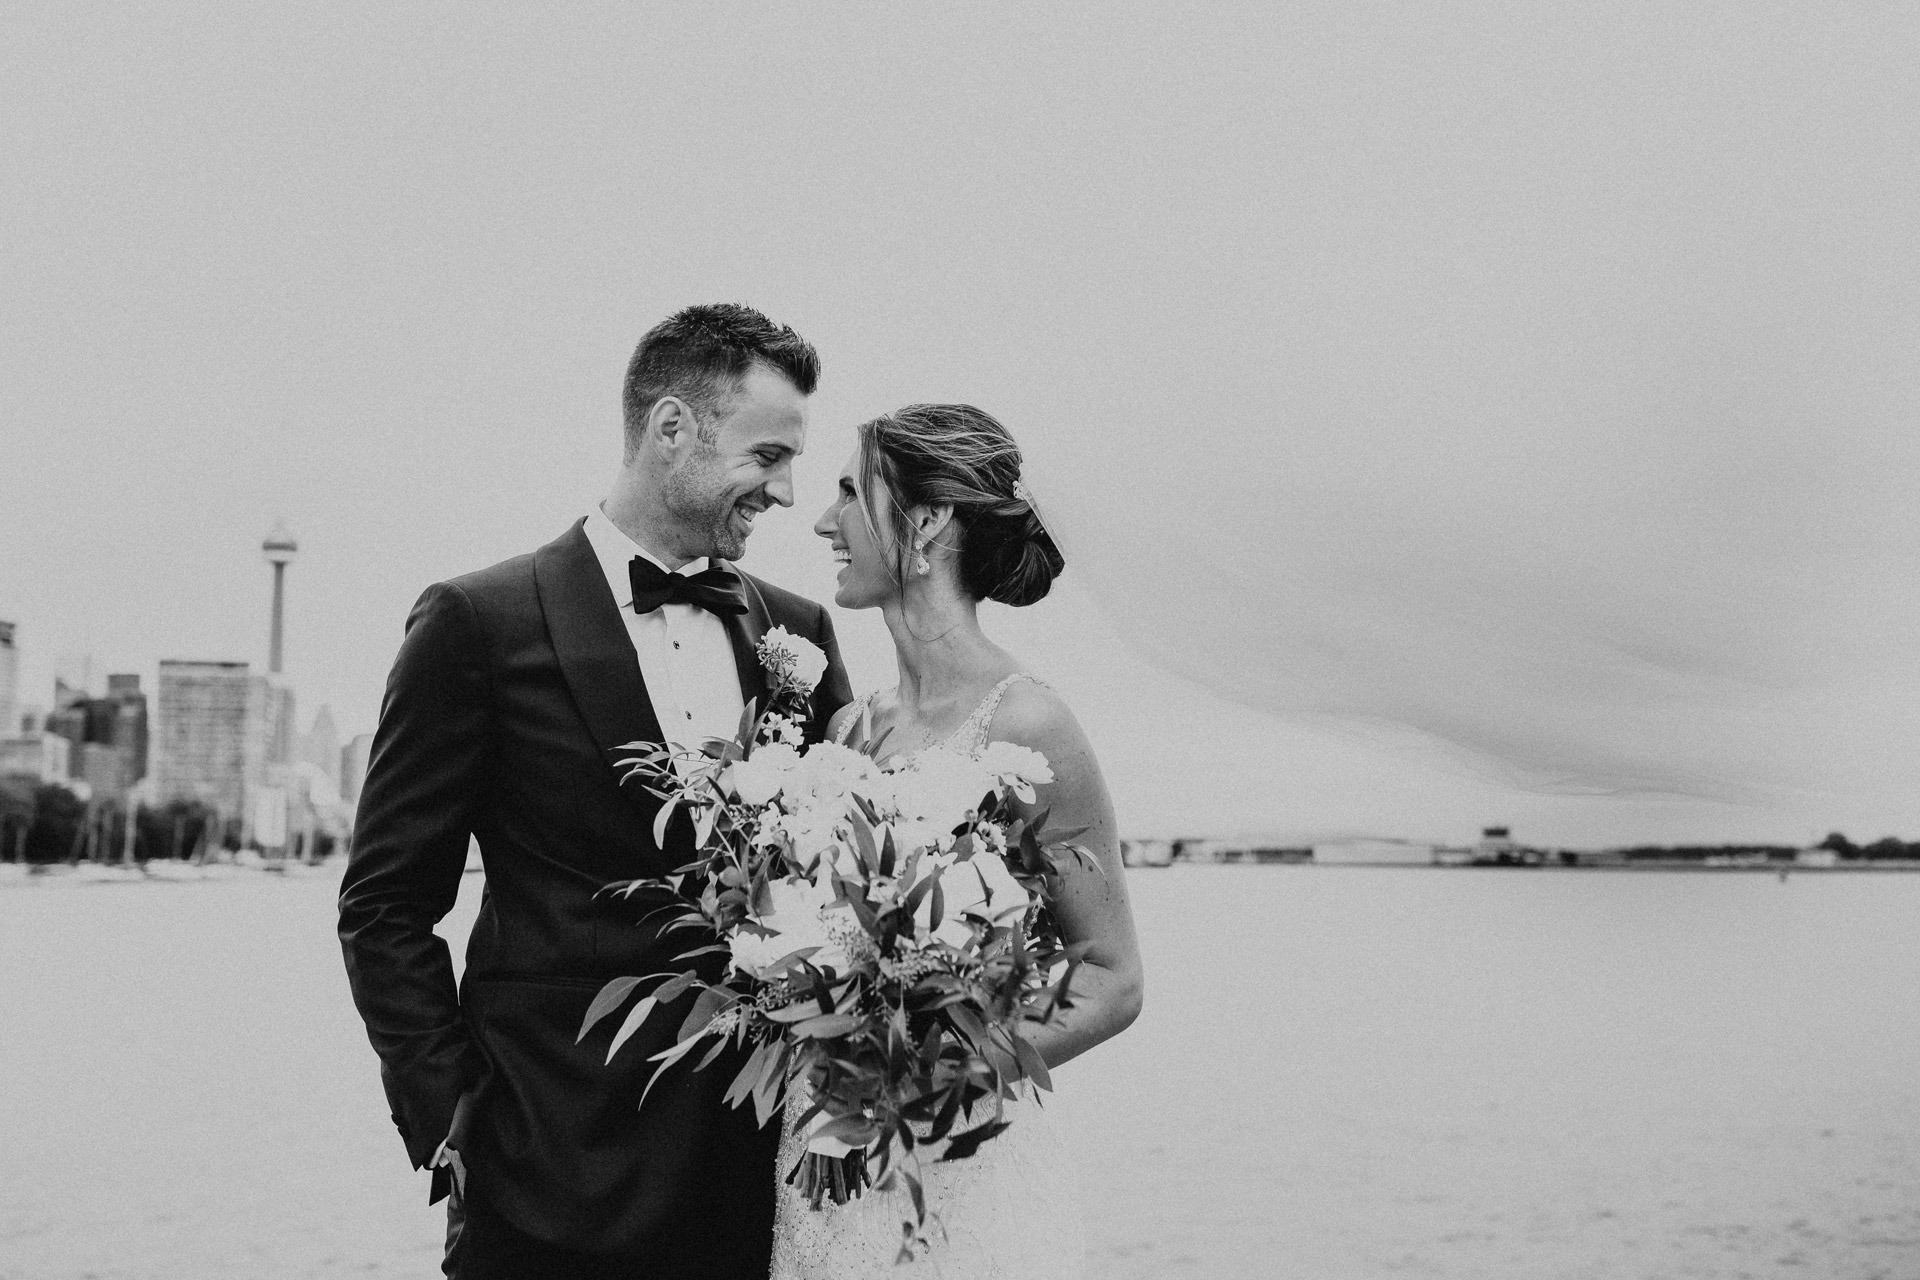 How to Make Your Wedding Look More Grand in Wedding Photos 1 Avangard Photography Toronto Wedding Photographer